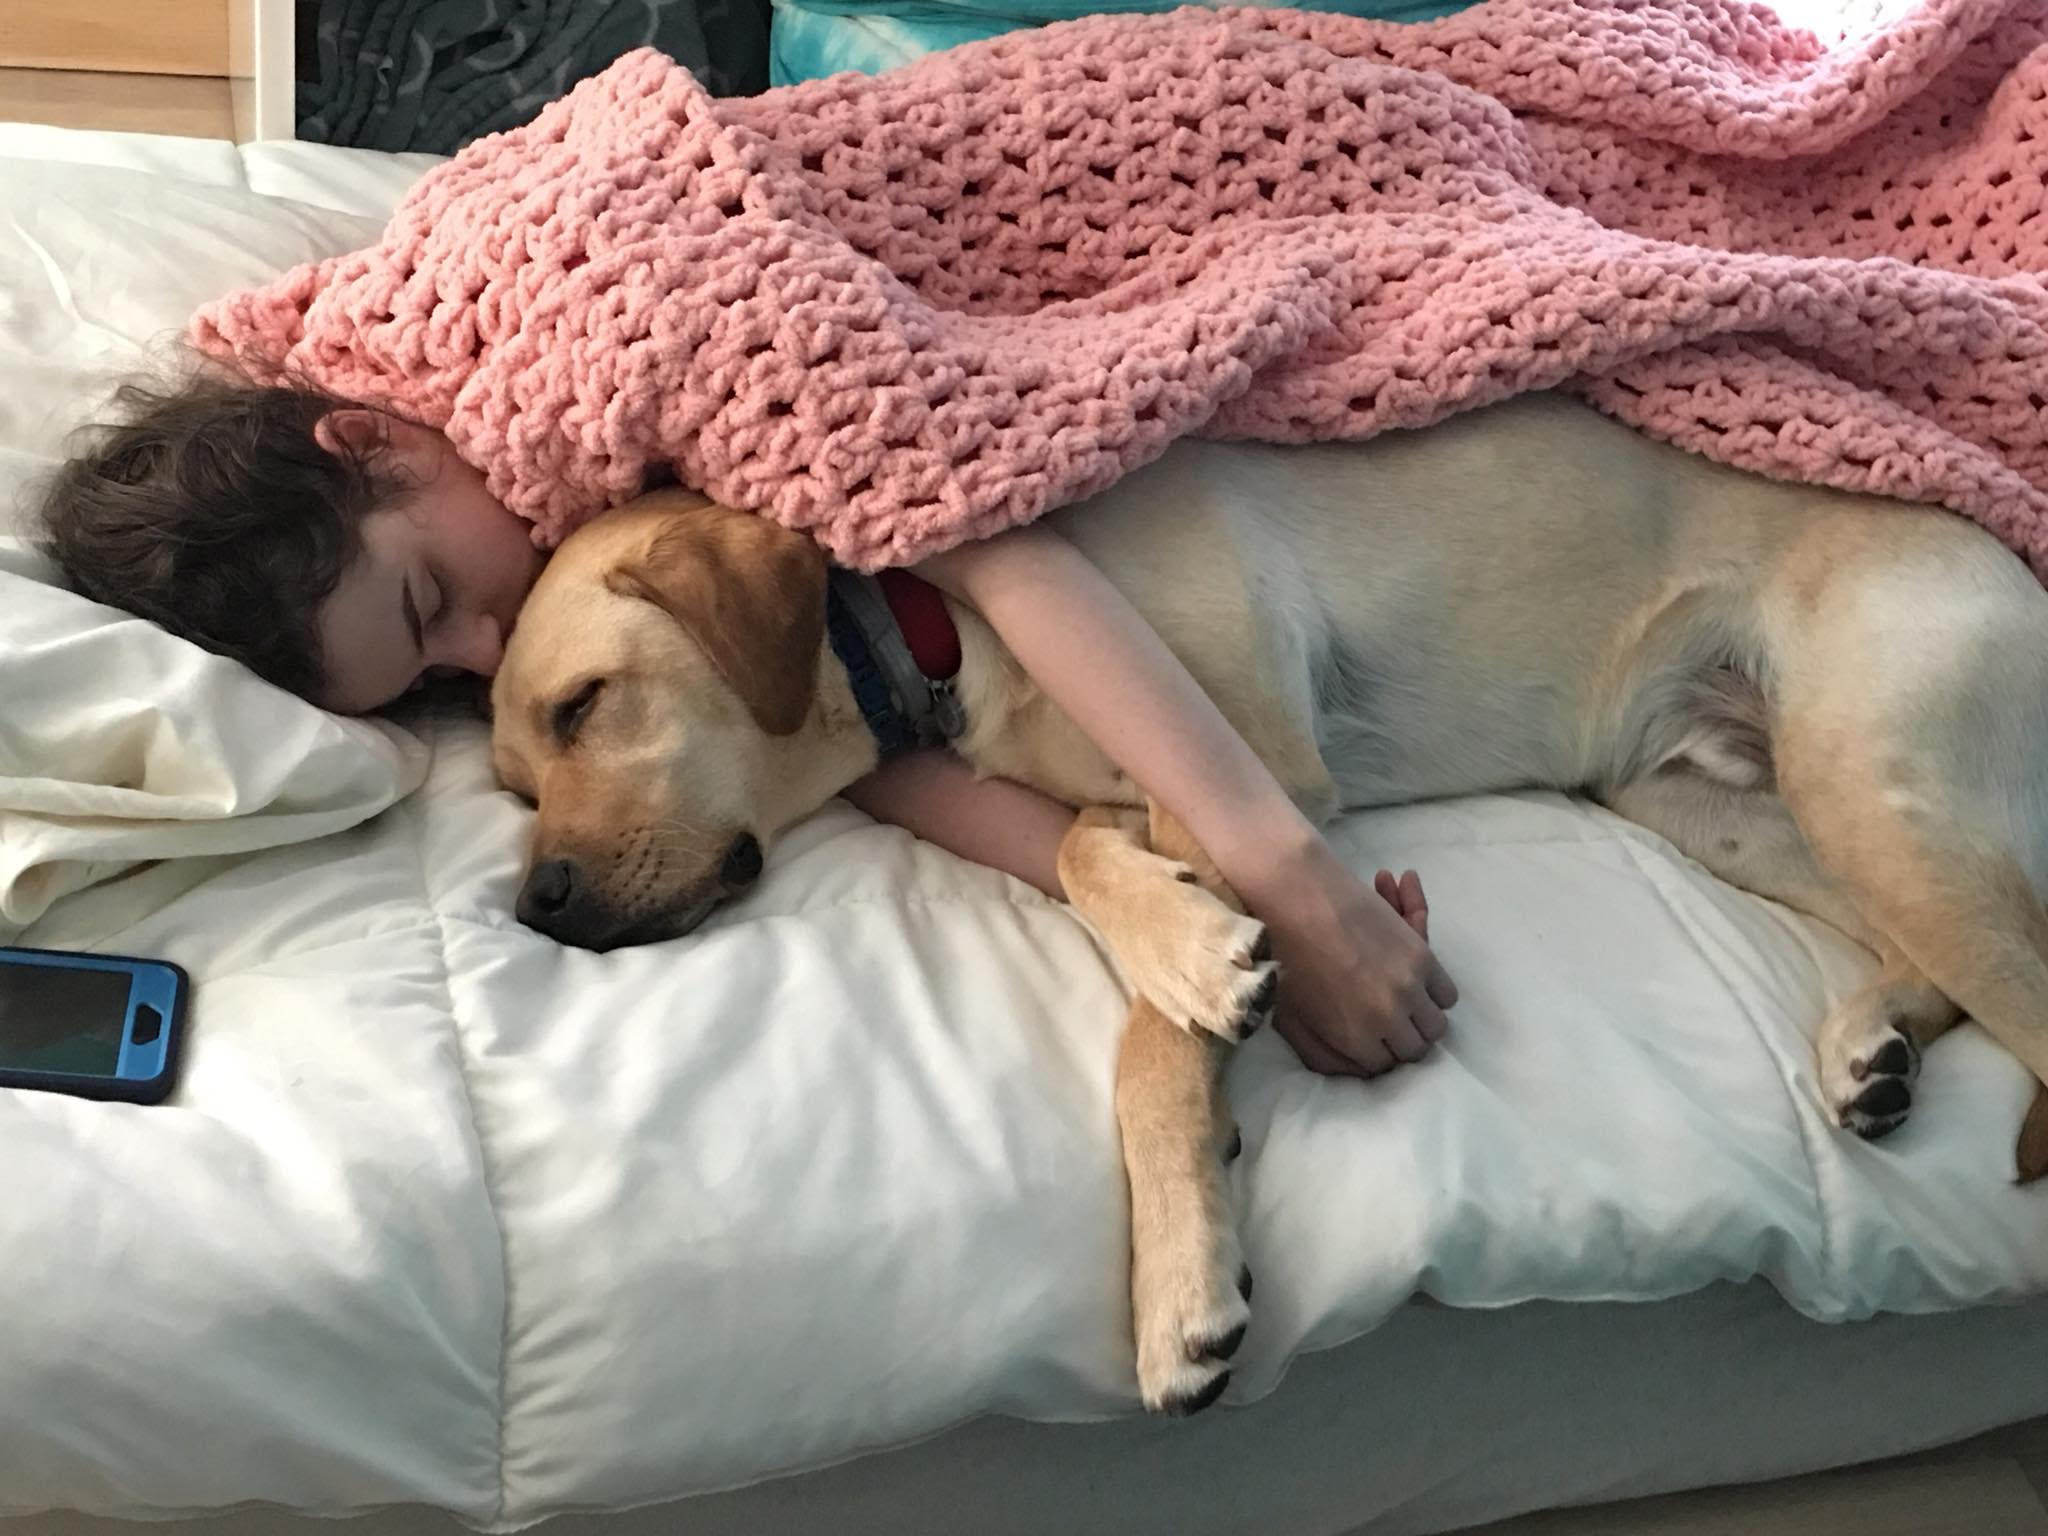 Volunteer dog sitting weekend with service dog